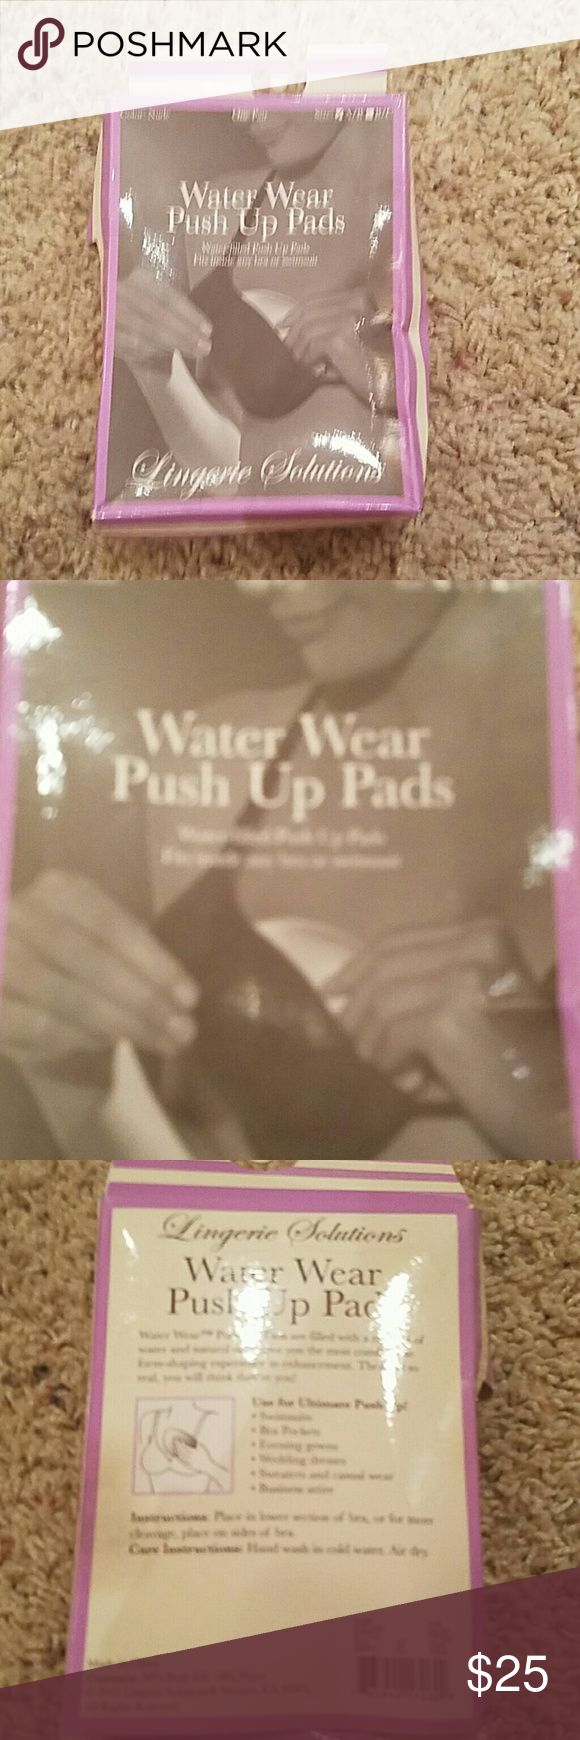 Water wear push up pads Water filled push up pads. Will fit inside any bra or even swimsuit!!! Brand new in original box!! Open to trades and or offers within reason Intimates & Sleepwear Bras